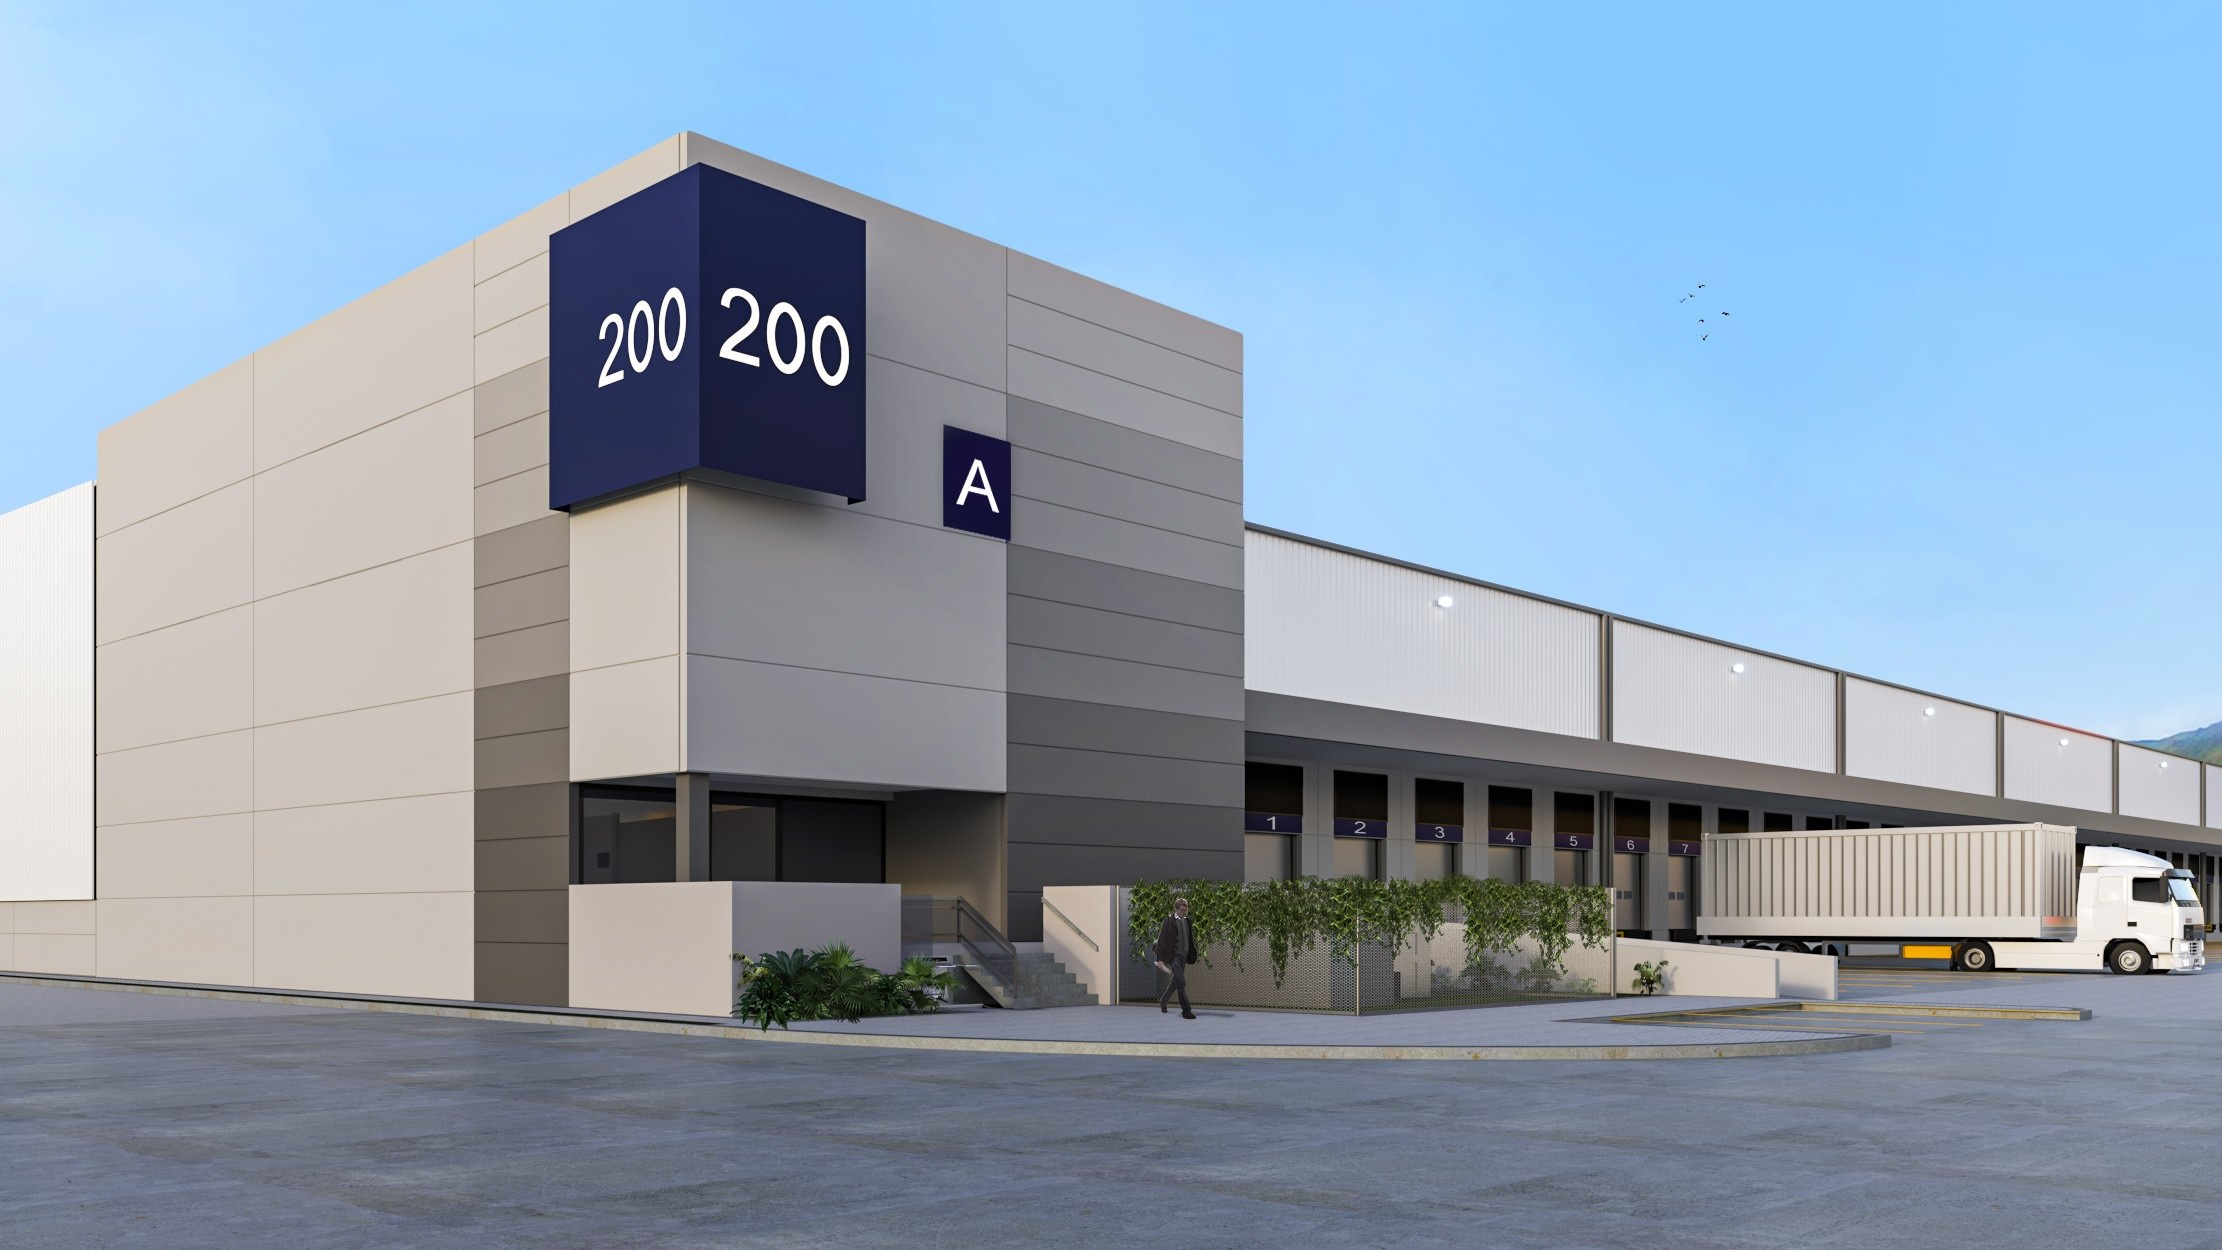 A large warehouse that has an A 200 sign on it and there is a semi truck that is backed into a loadi